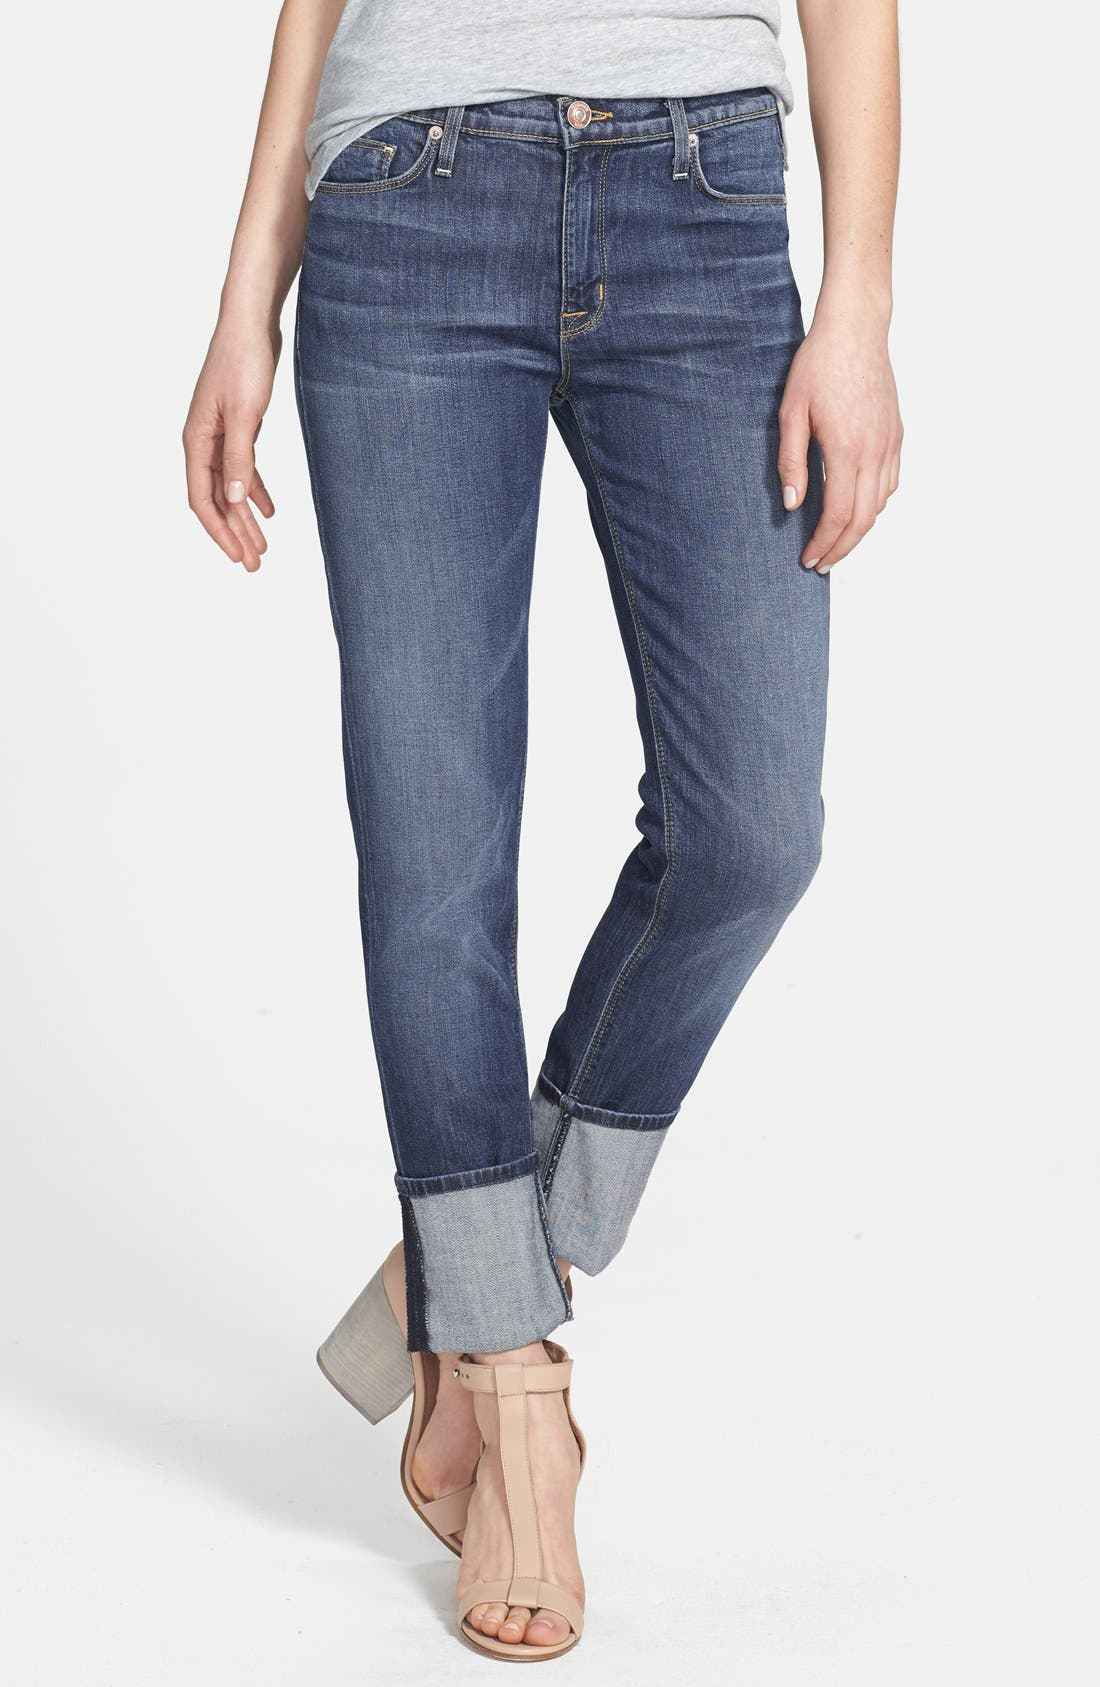 Main Image - Hudson Jeans 'Muse' Cuff Crop Jeans (Indie)